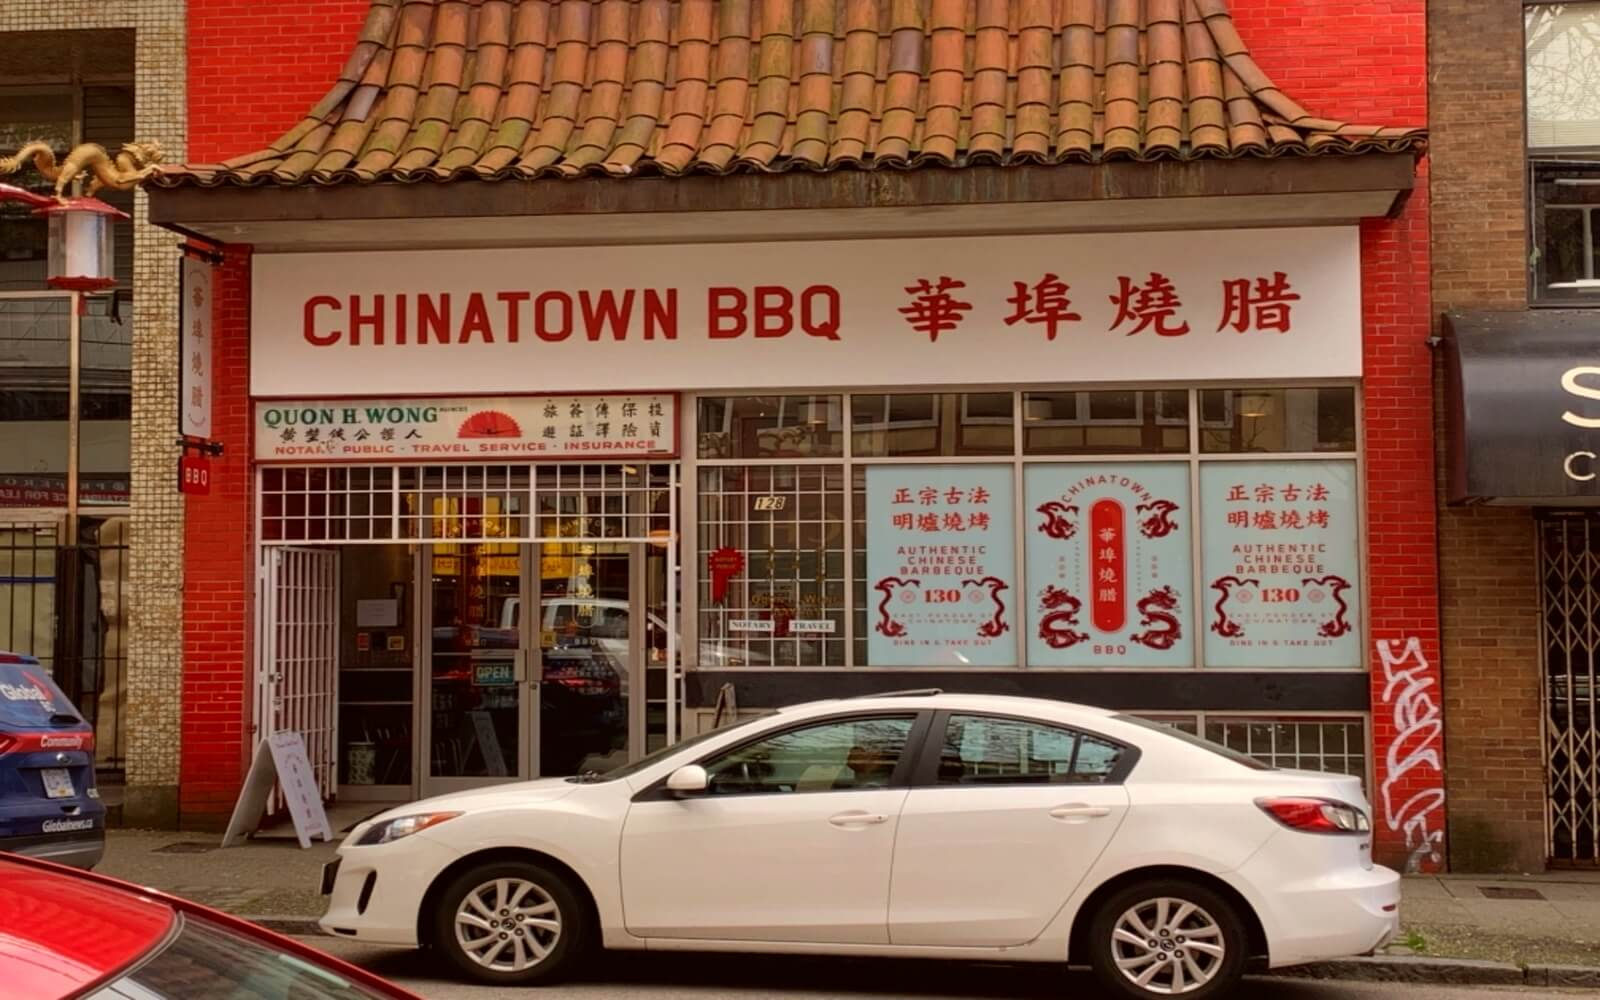 The entrance to Chinatown BBQ